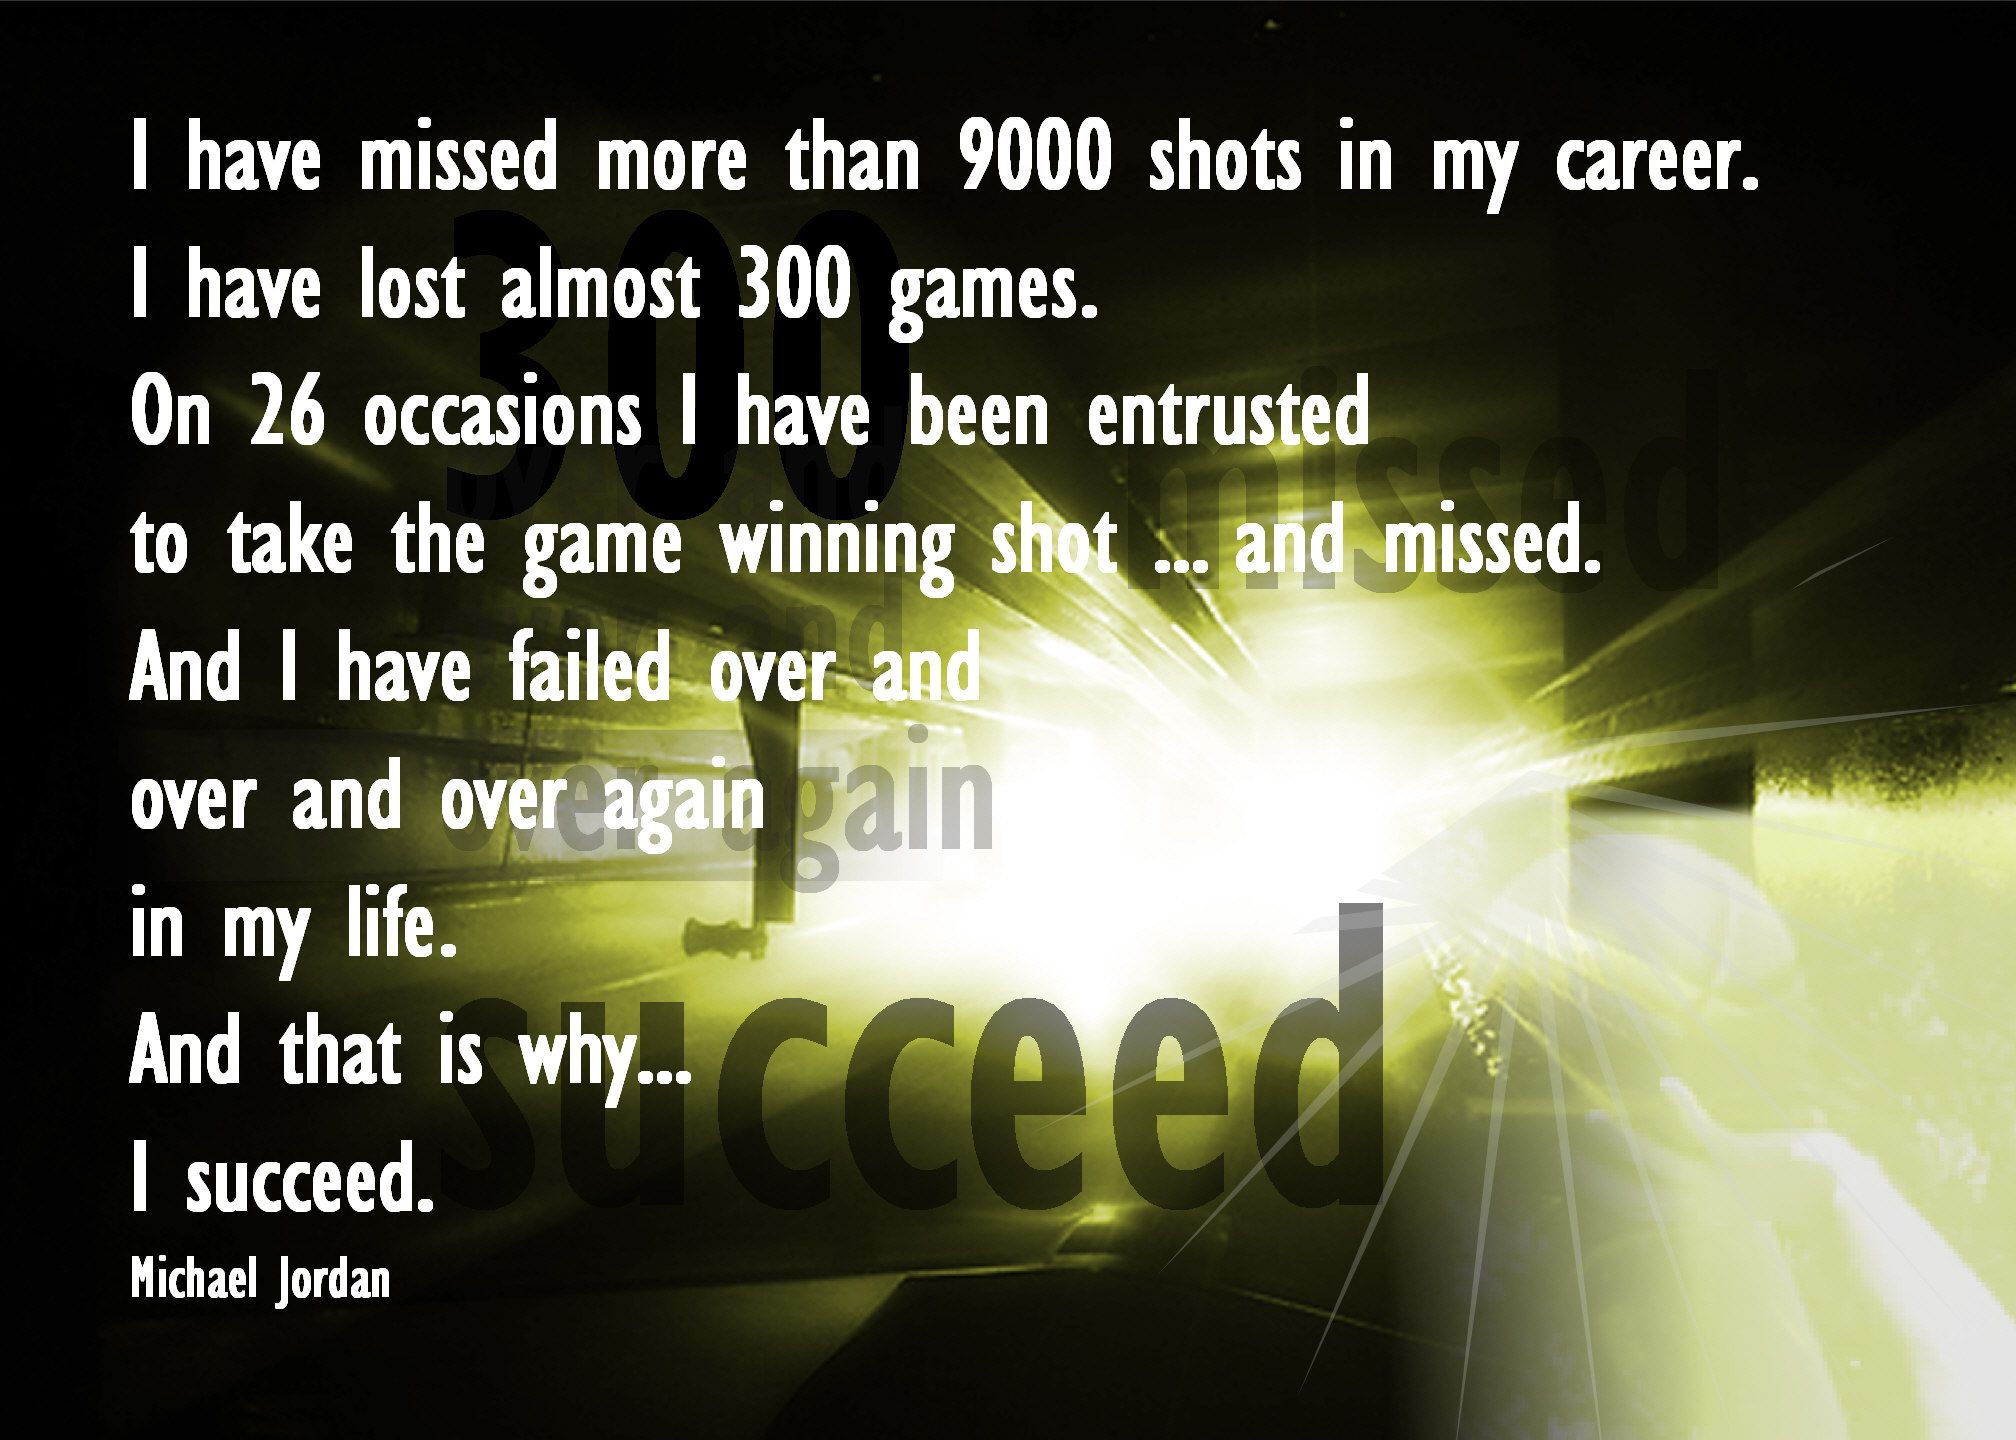 Quotes About Failure Leading To Success: Michael Jordan Failure Leads To Success Quote